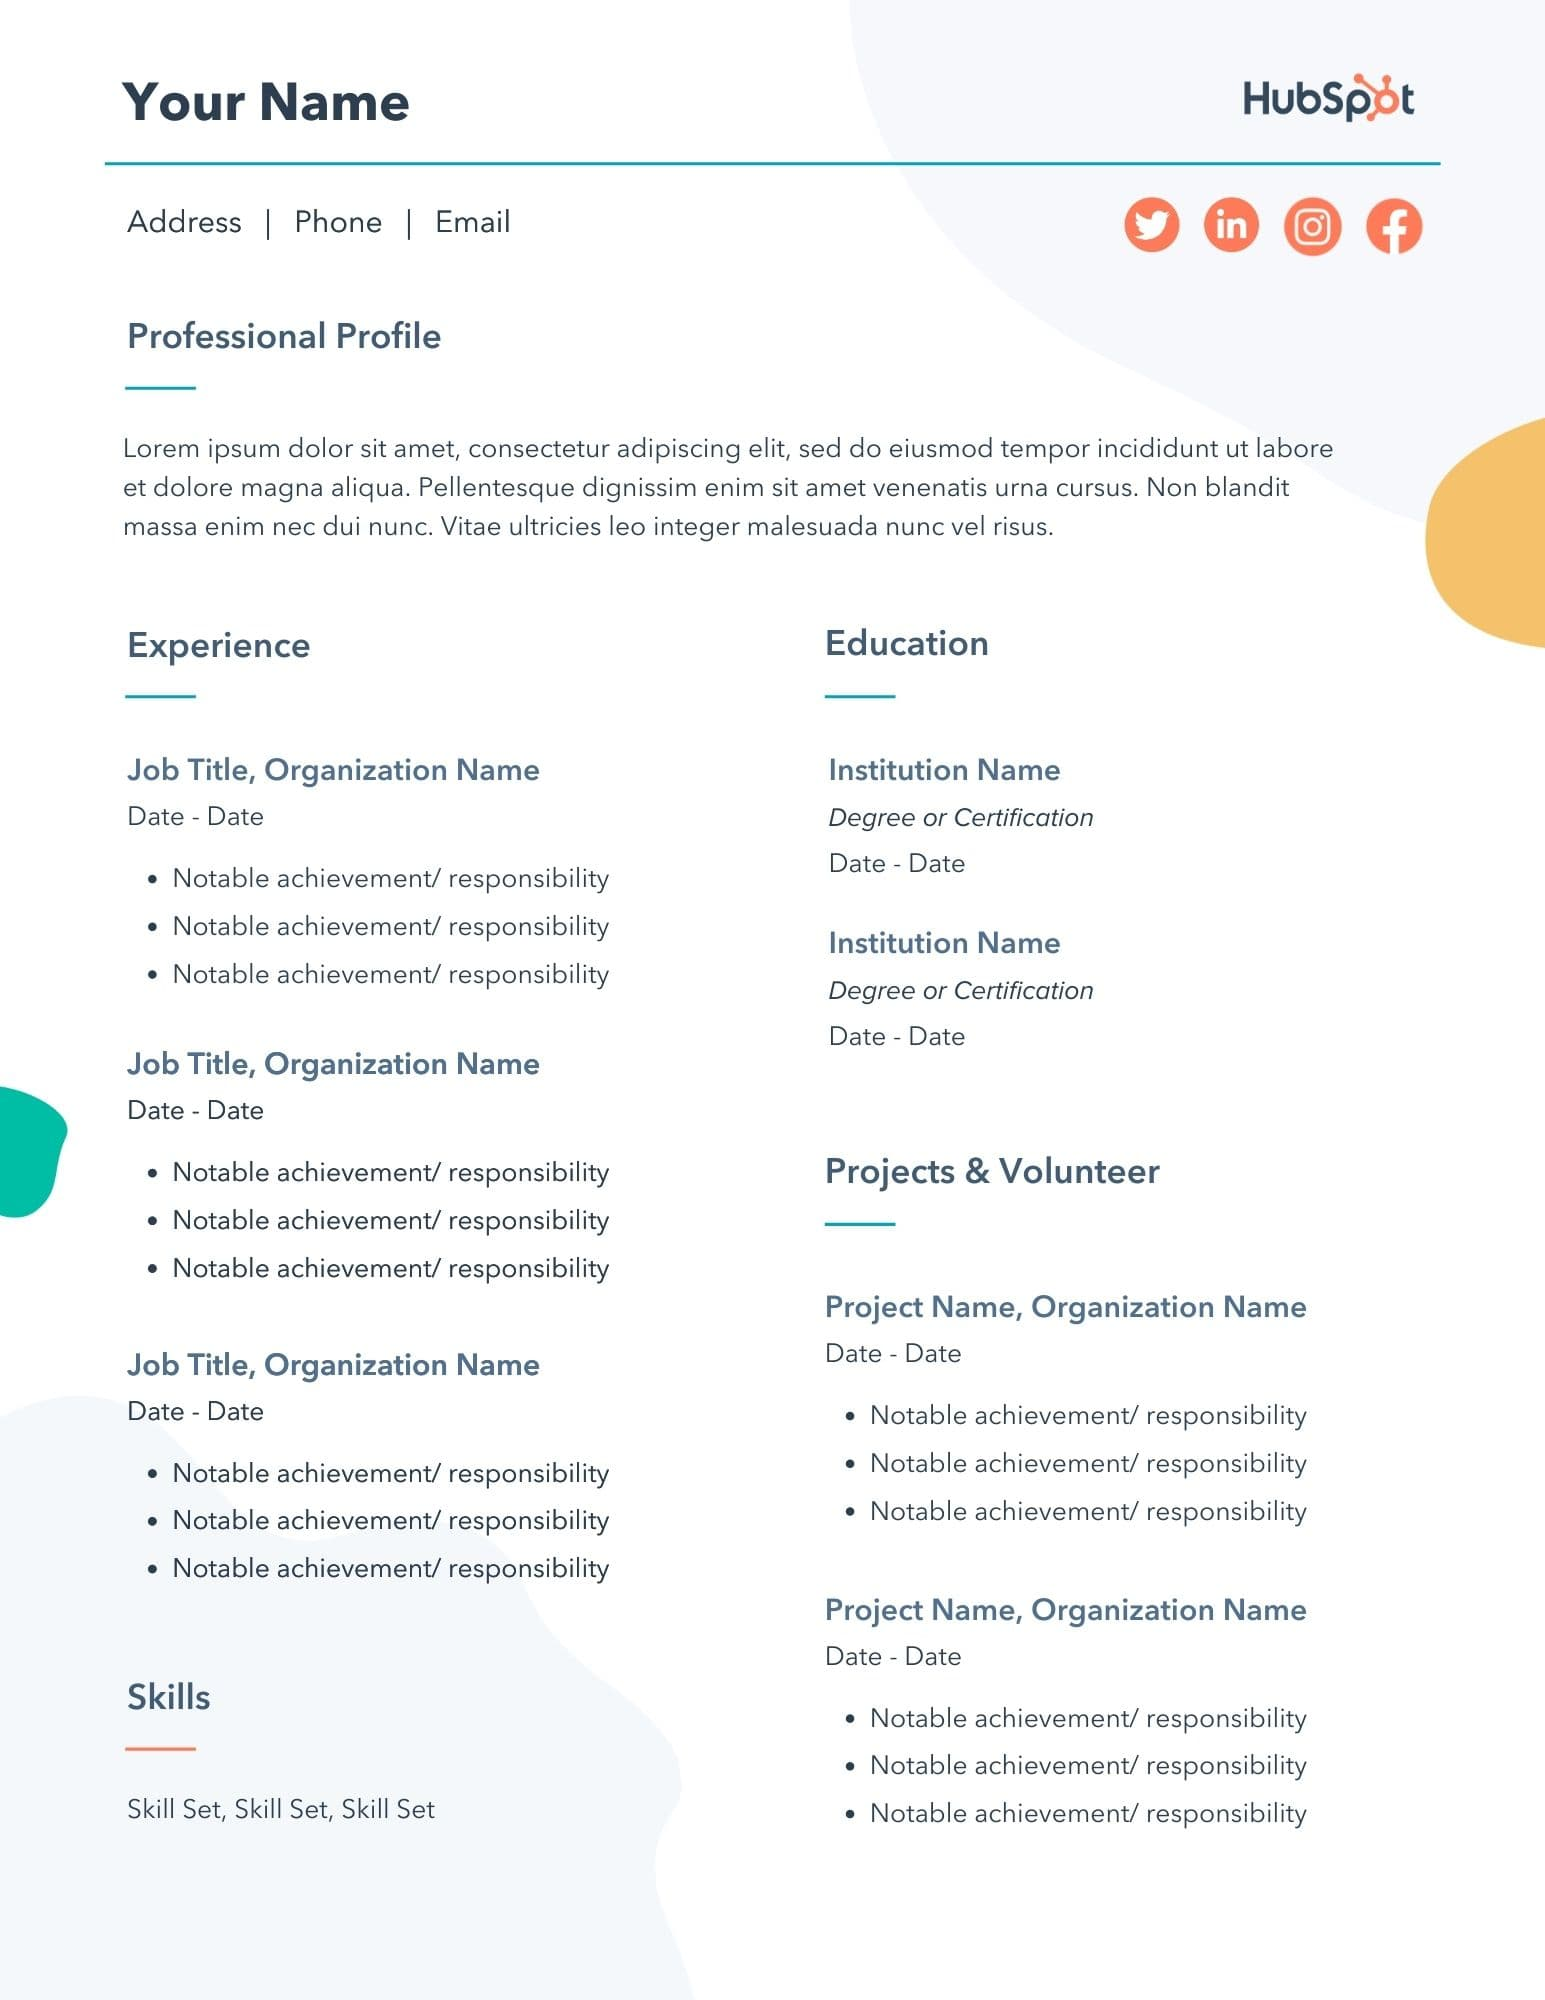 free resume templates for microsoft word to make your own email template sample social Resume Free Resume To Email